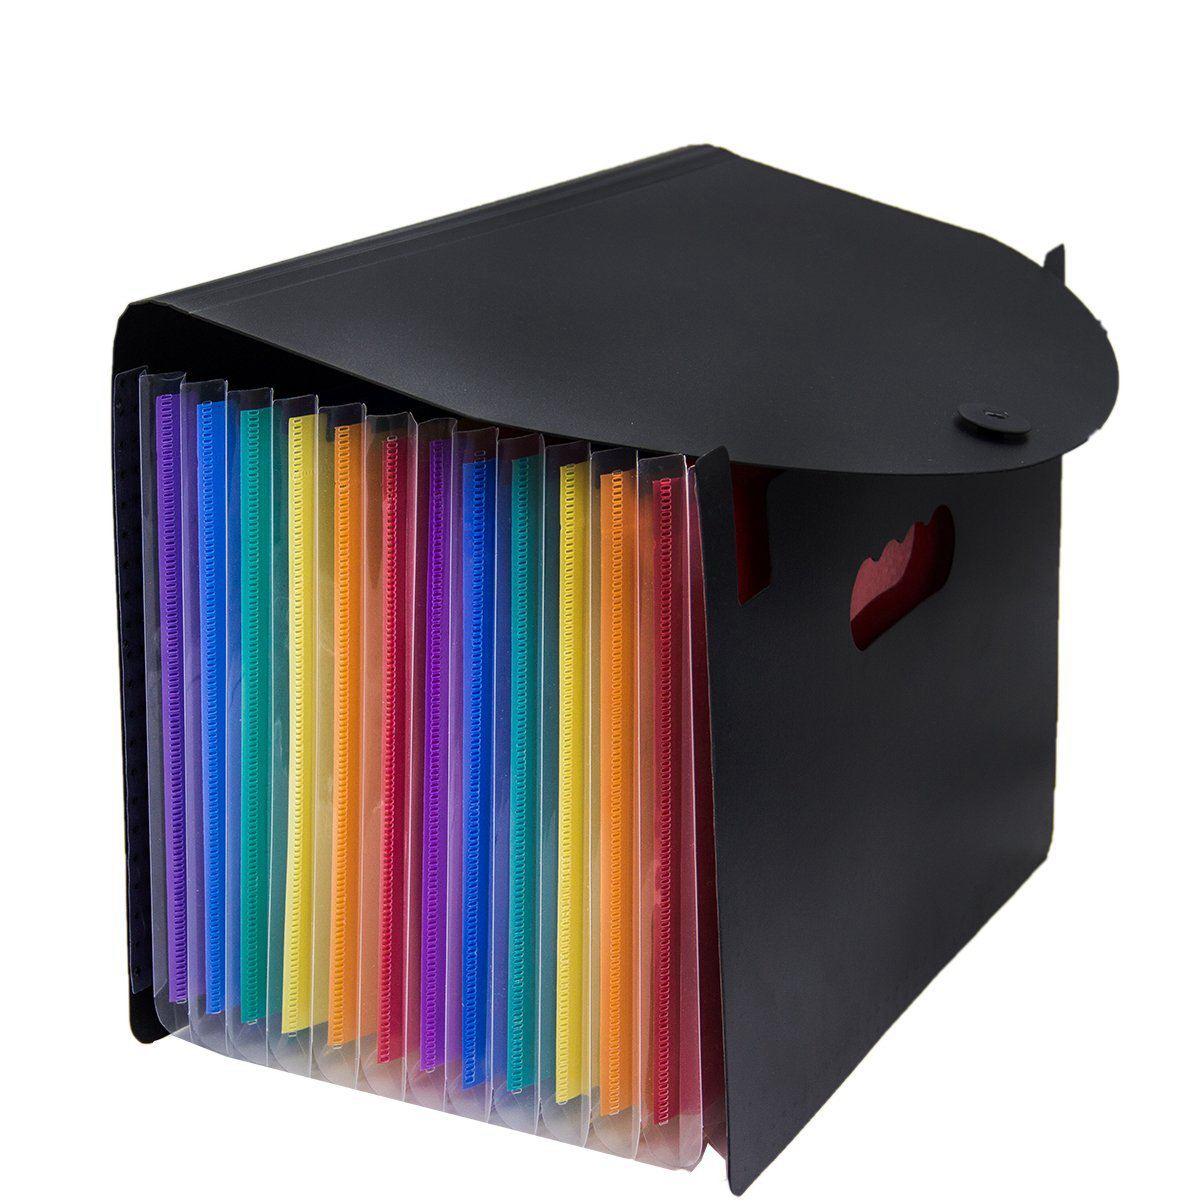 Expanding File Folder 12 Pockets, black Accordion A4 folder Document Bag Office School Supply 1 pc 13 index pockets layers document file folder expanding walle a4 size papers bag more to send a plastic ruler